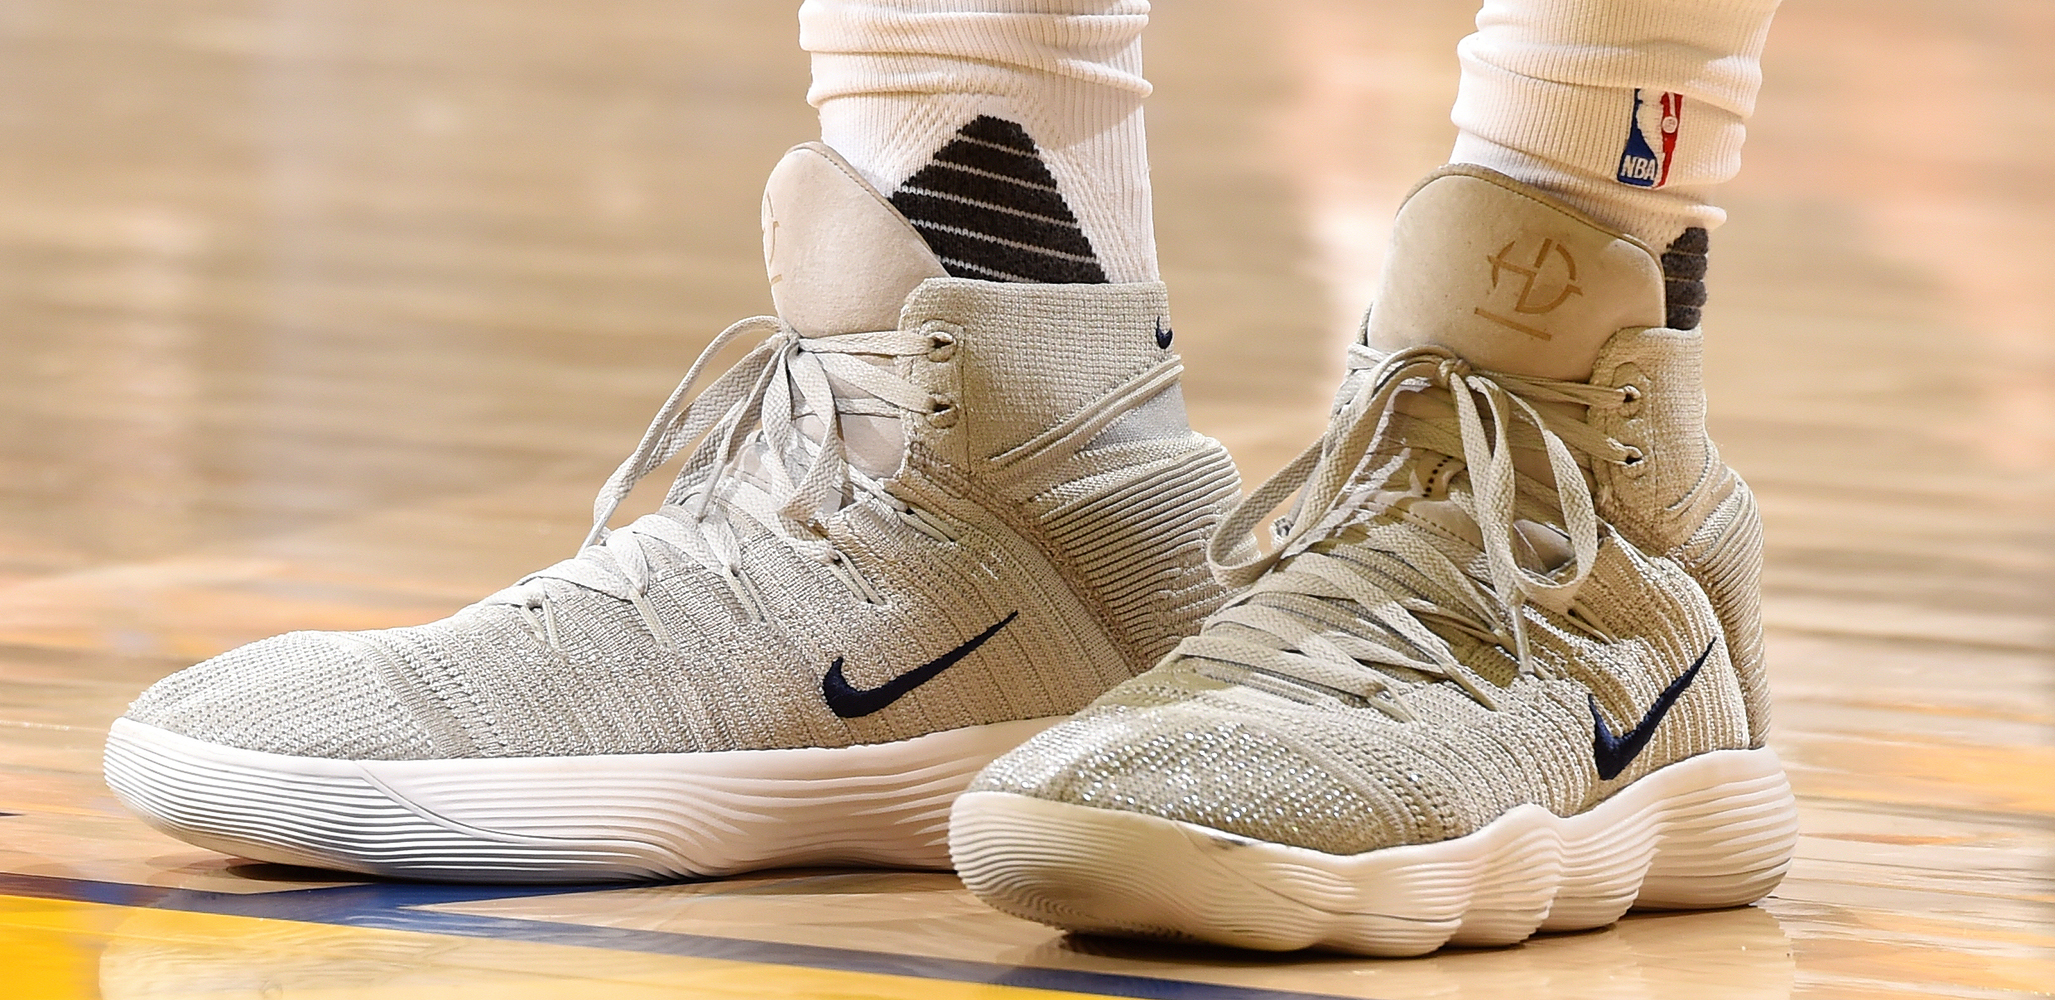 Nike React Hyperdunk 2017 Flyknit worn by Draymond Green